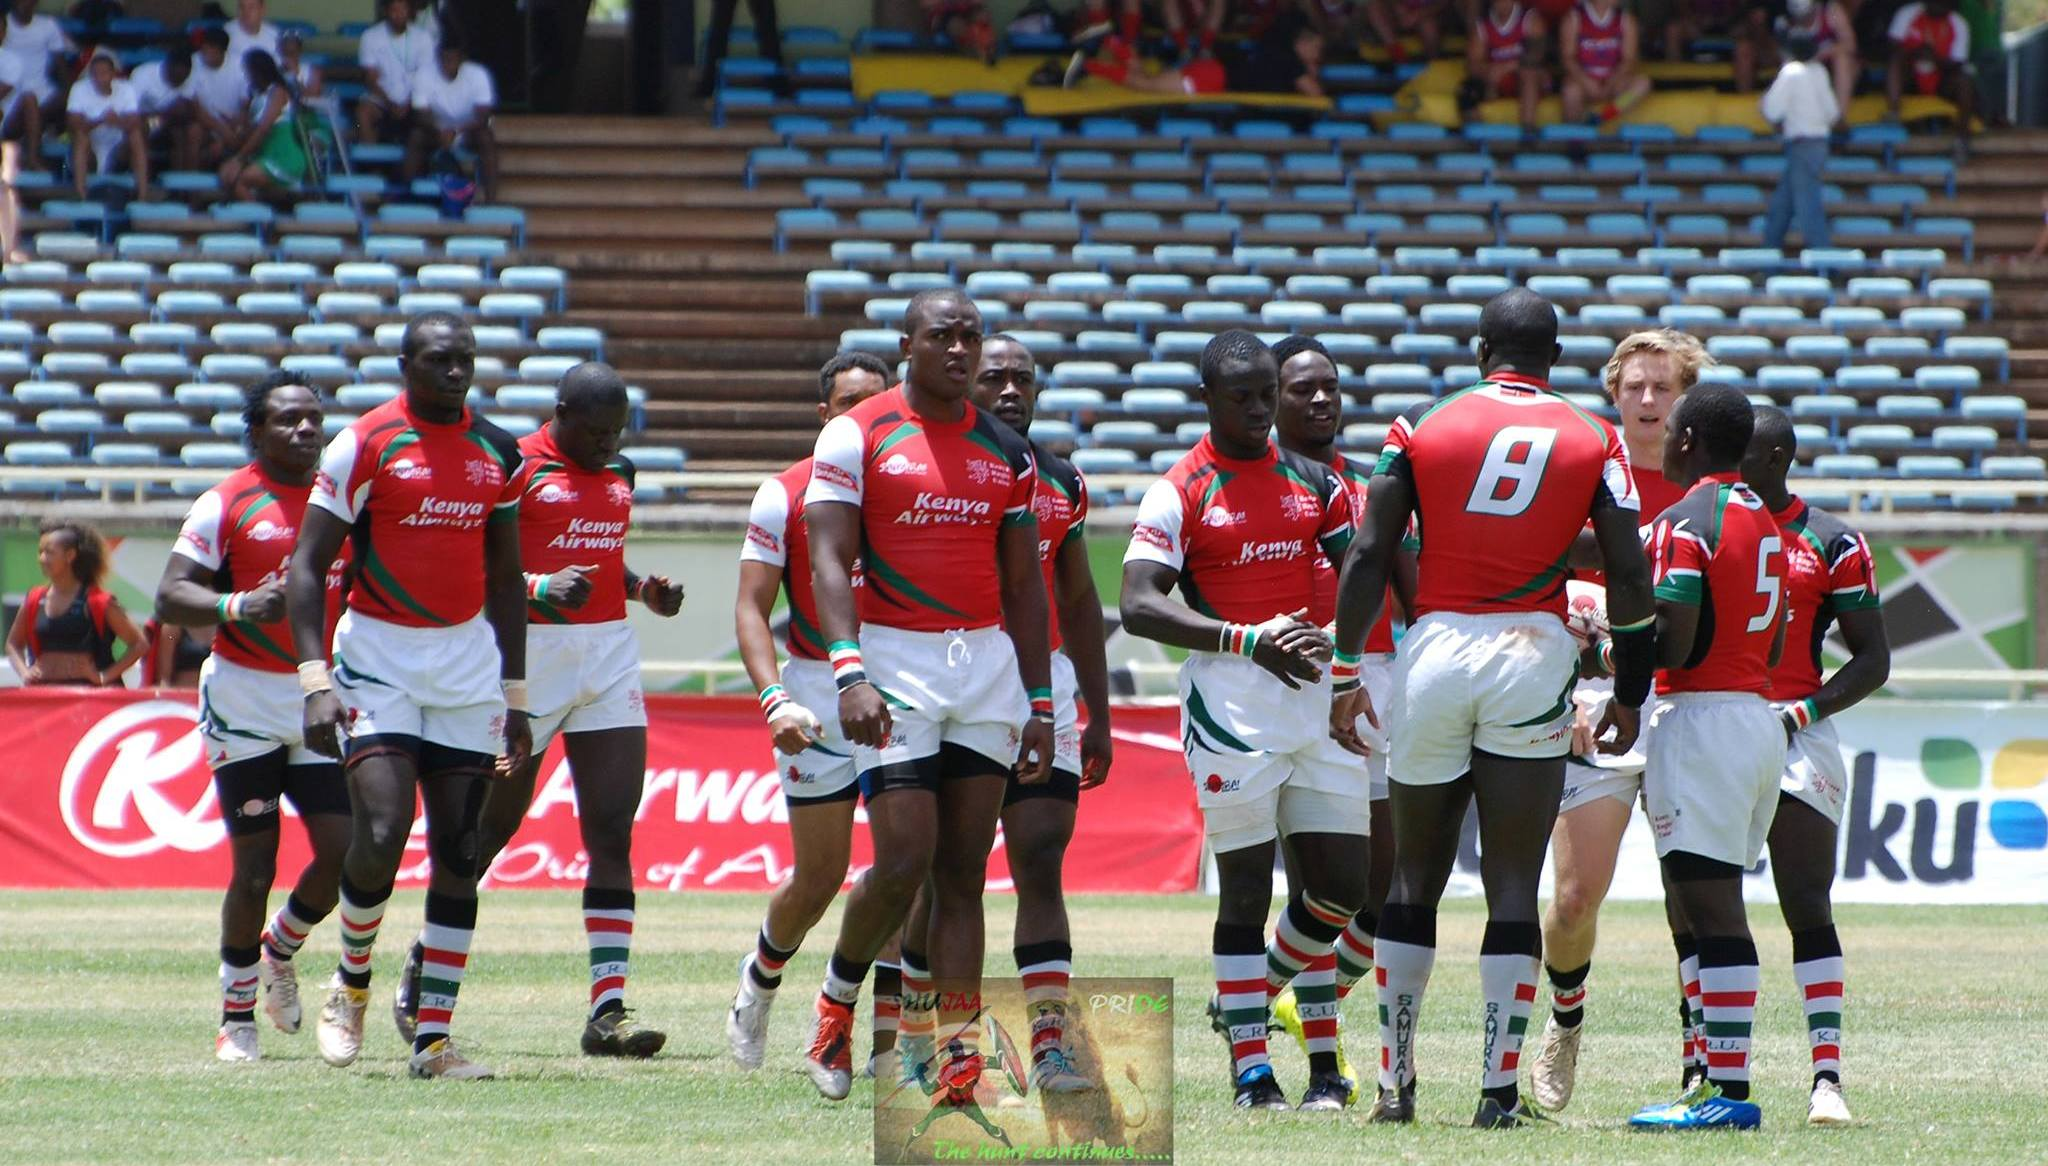 Kenya 7s Squad for dubai 7s and cape town 7s